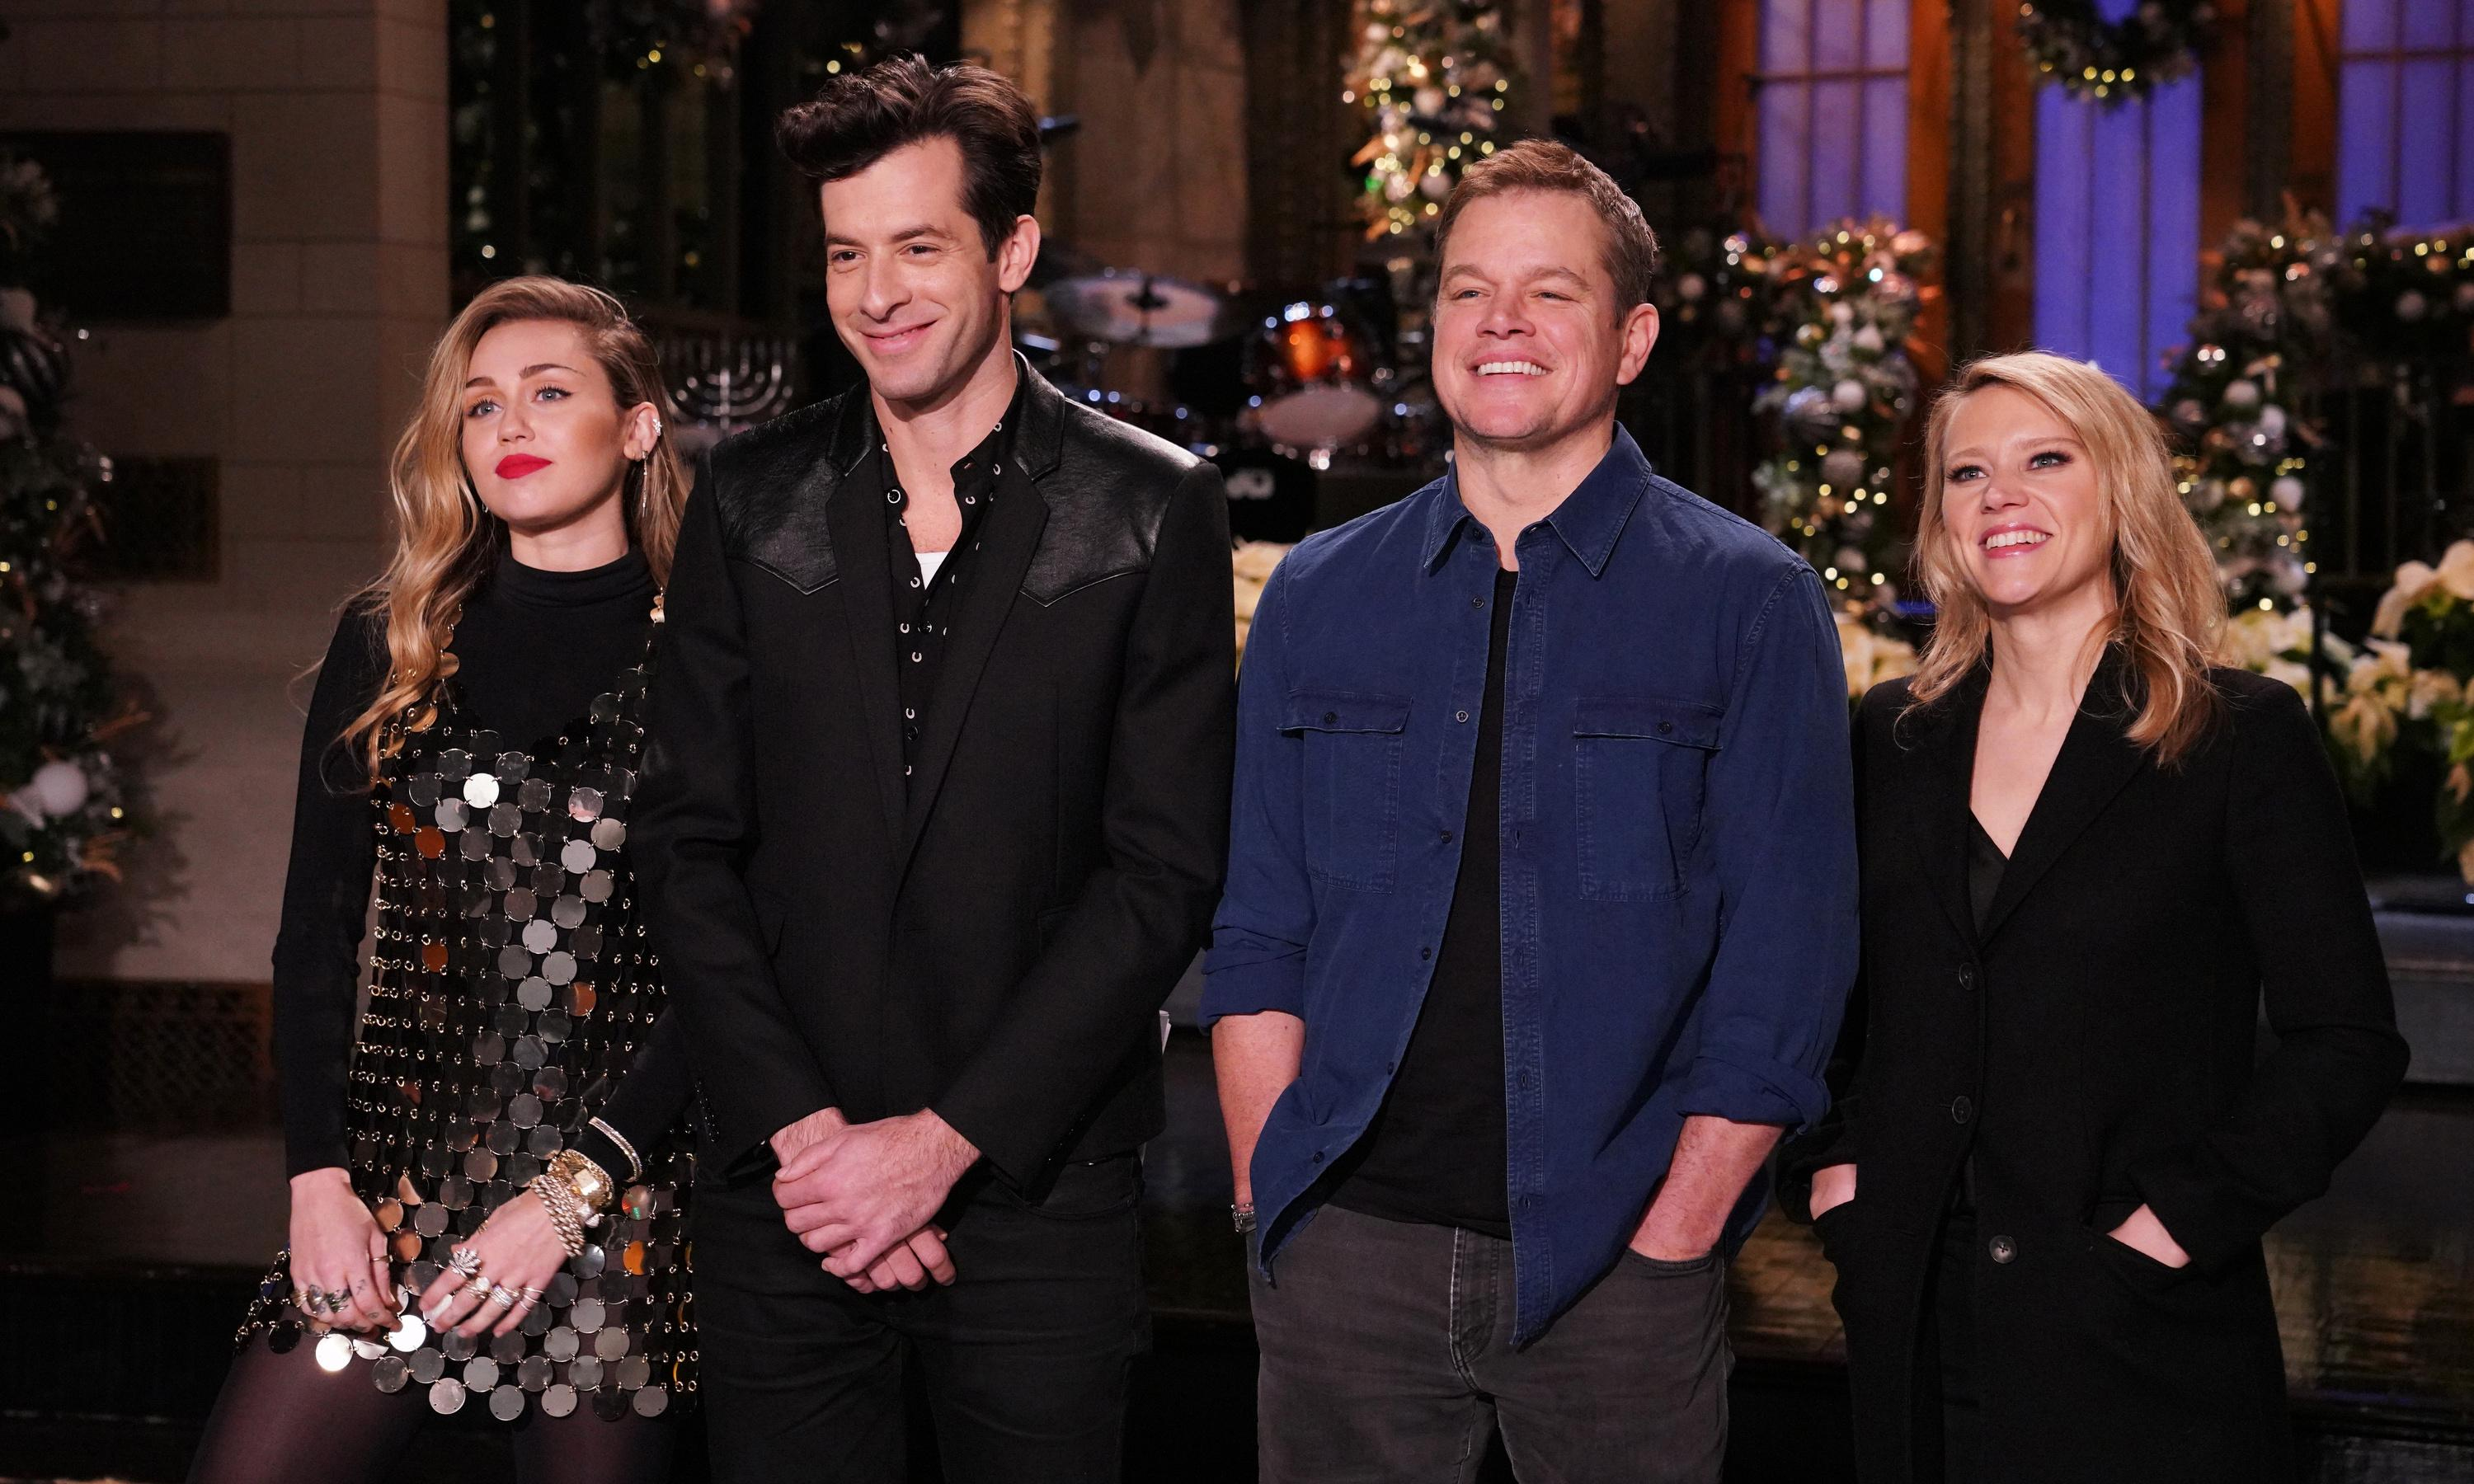 Saturday Night Live: solid Christmas episode with Matt Damon and Miley Cyrus